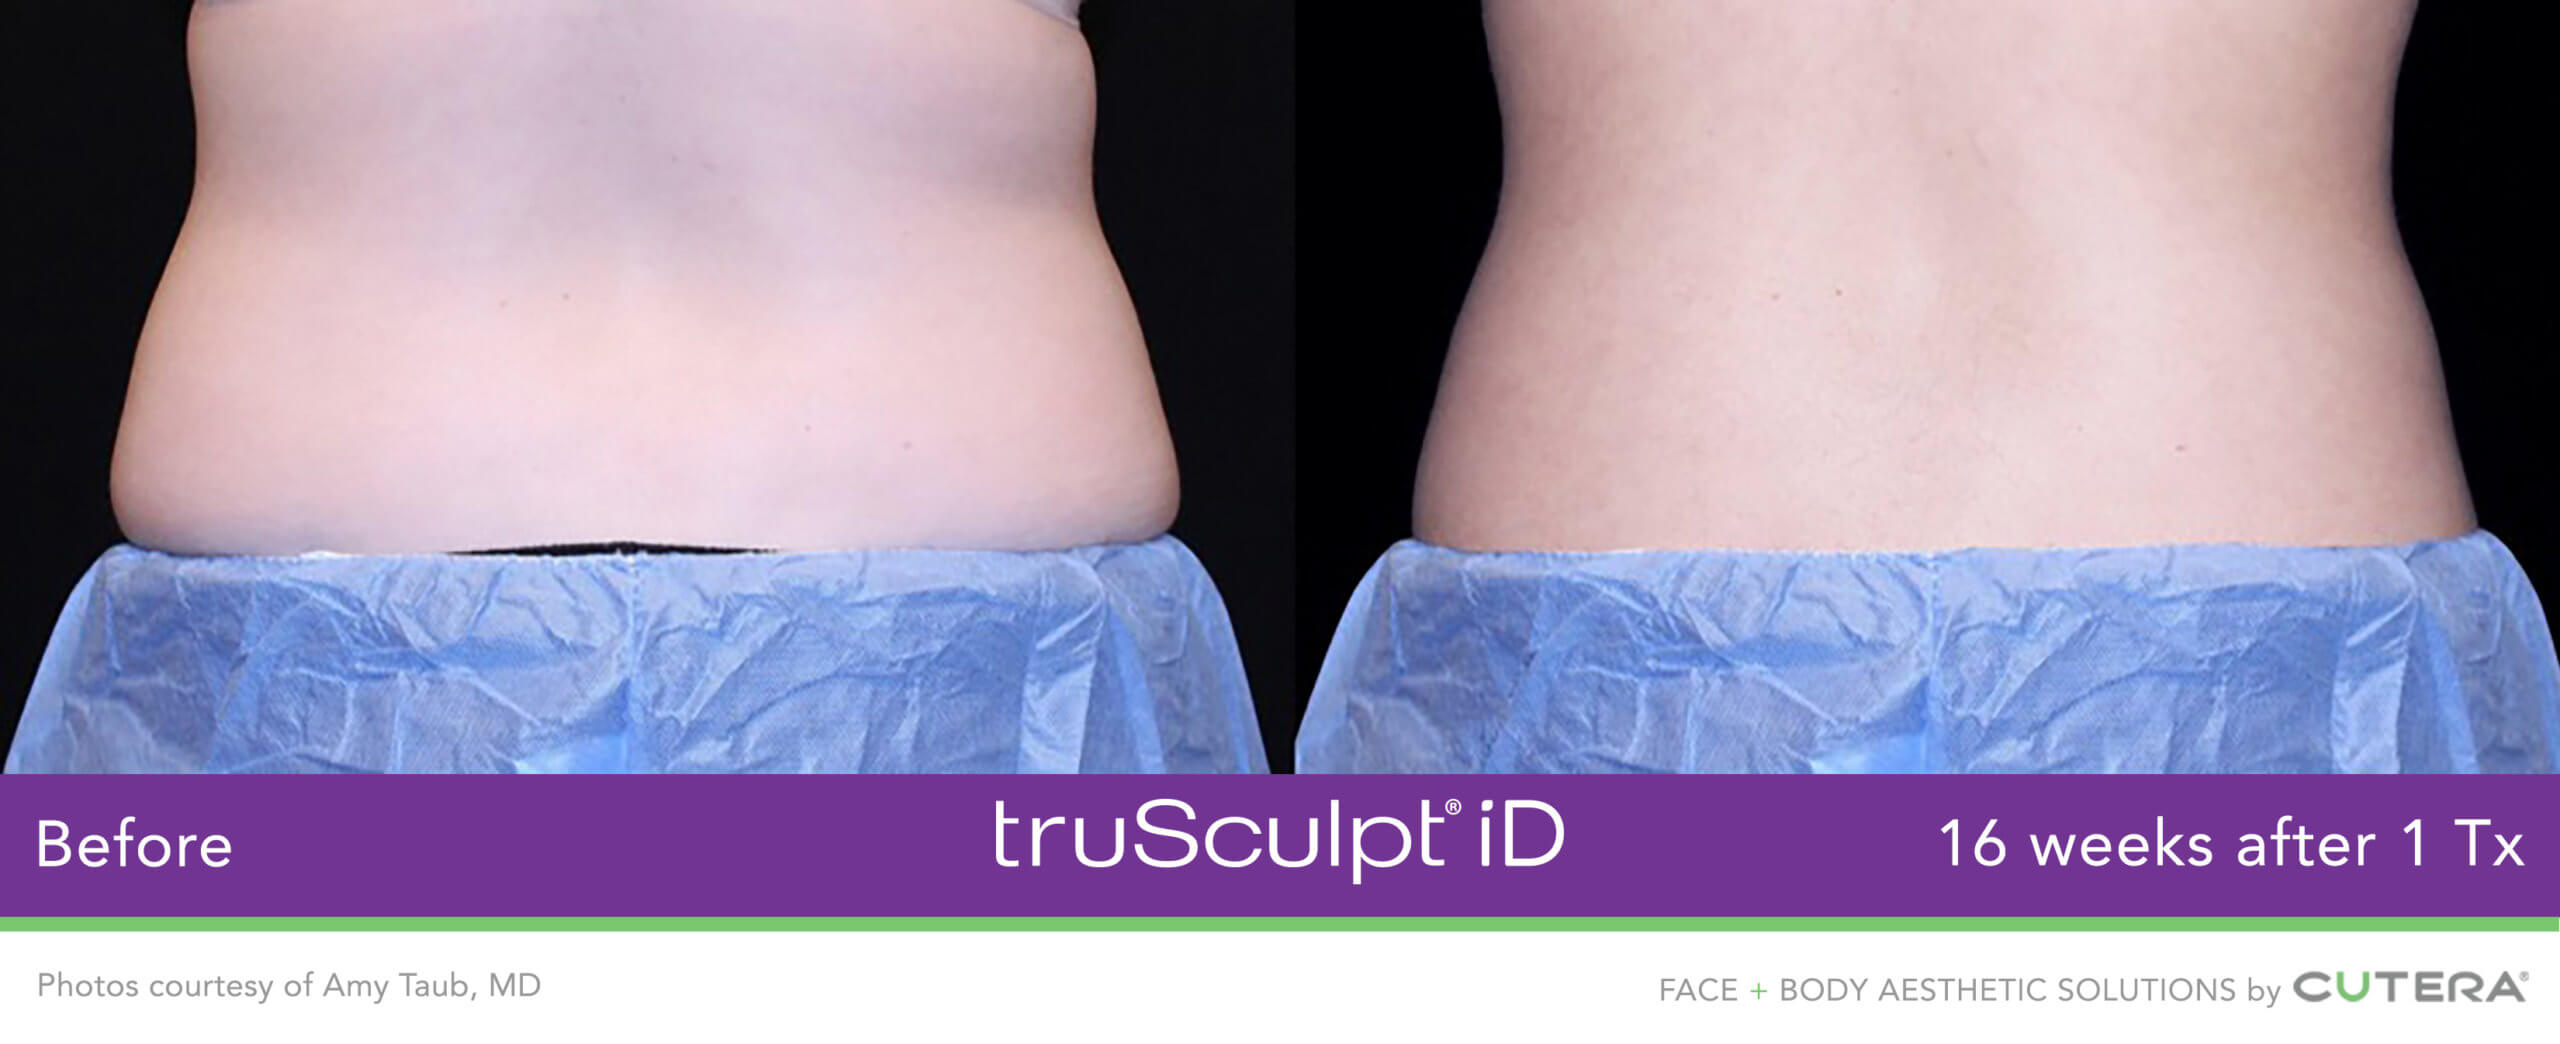 Before and After of the truSculpt iD treatment on a womans back